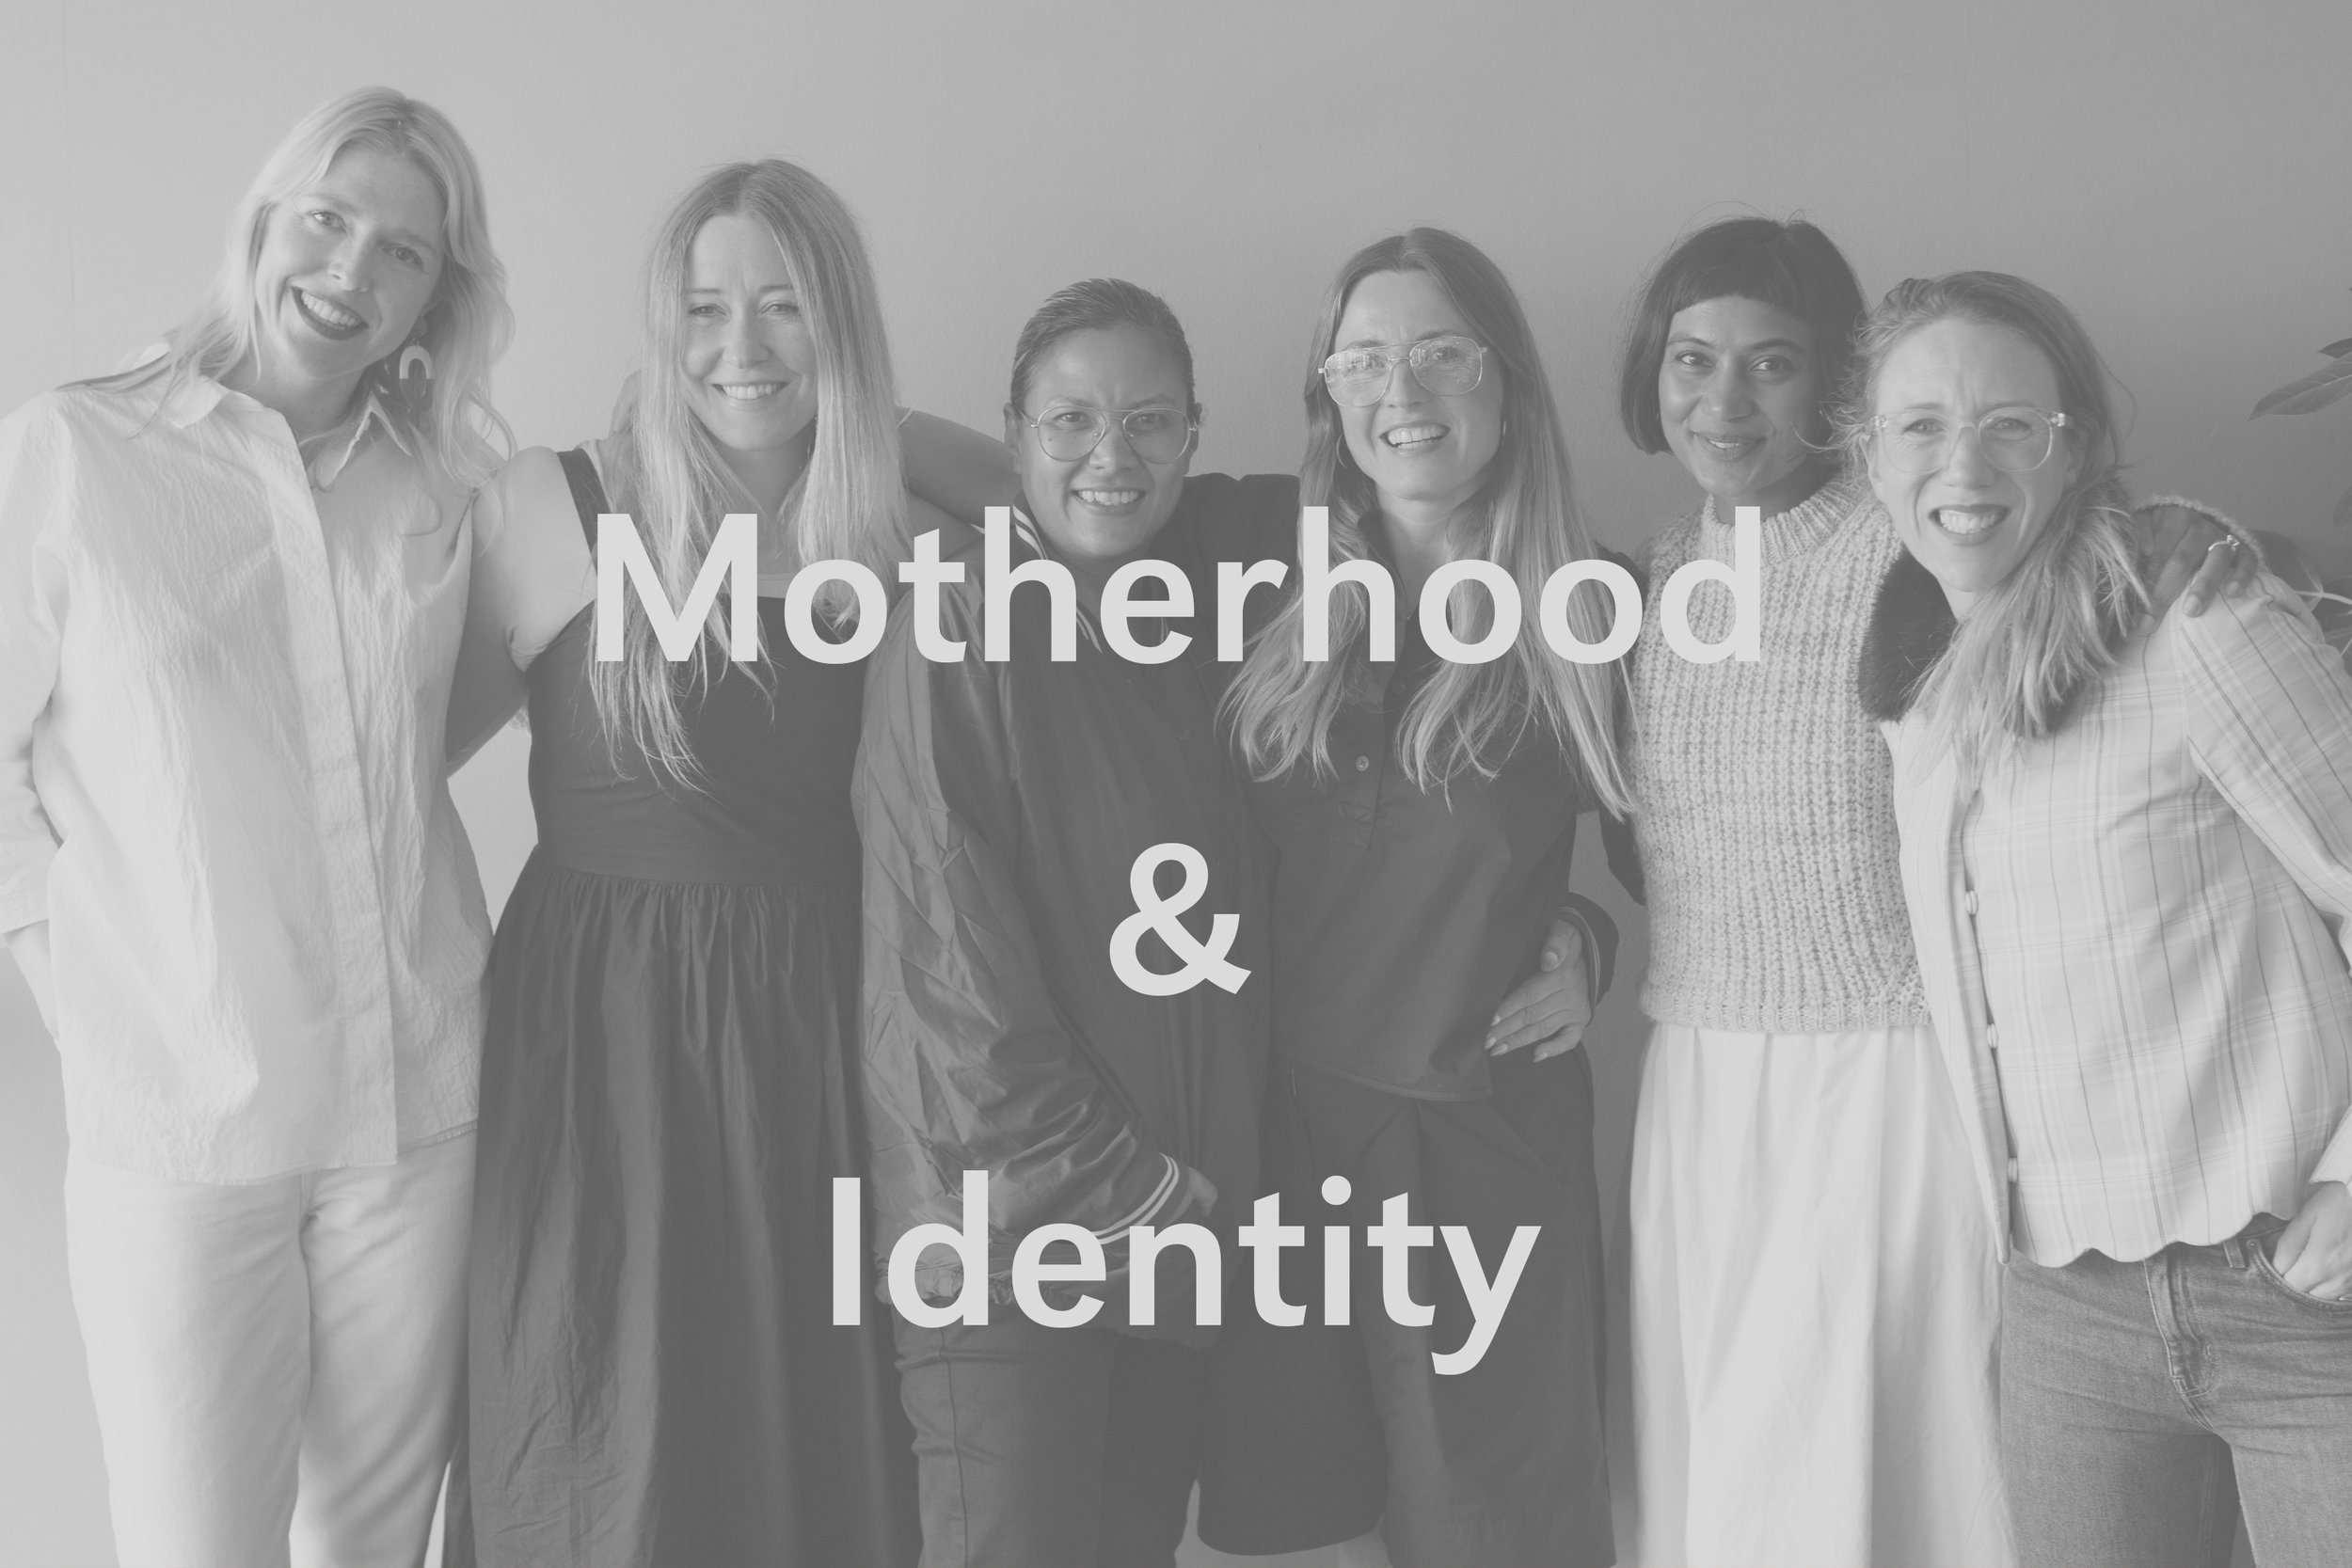 motherhood event cover.jpg